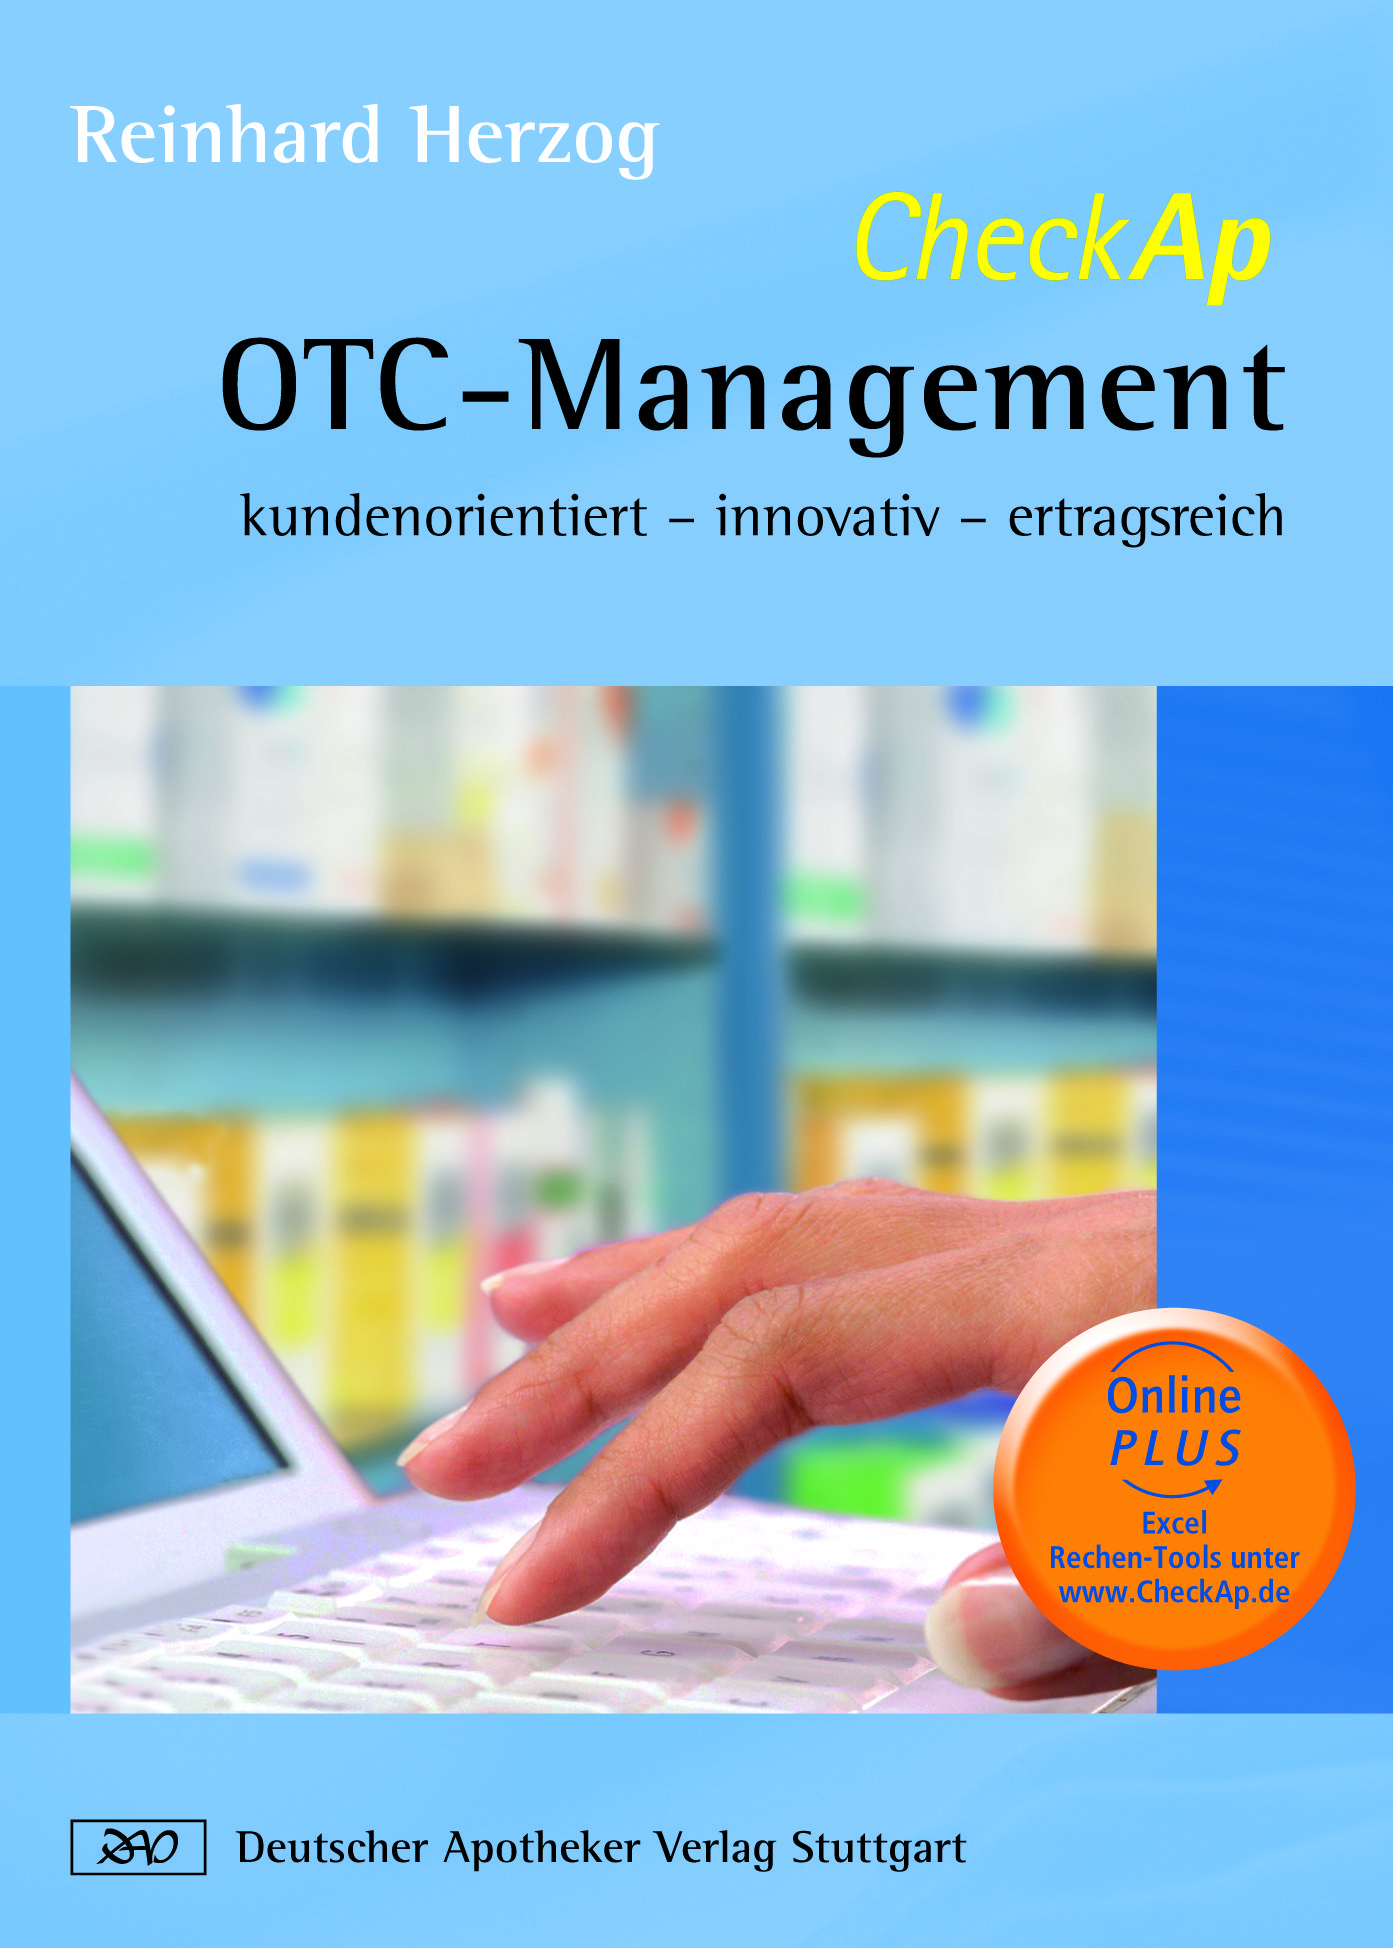 CheckAp OTC-Management Reinhard Herzog